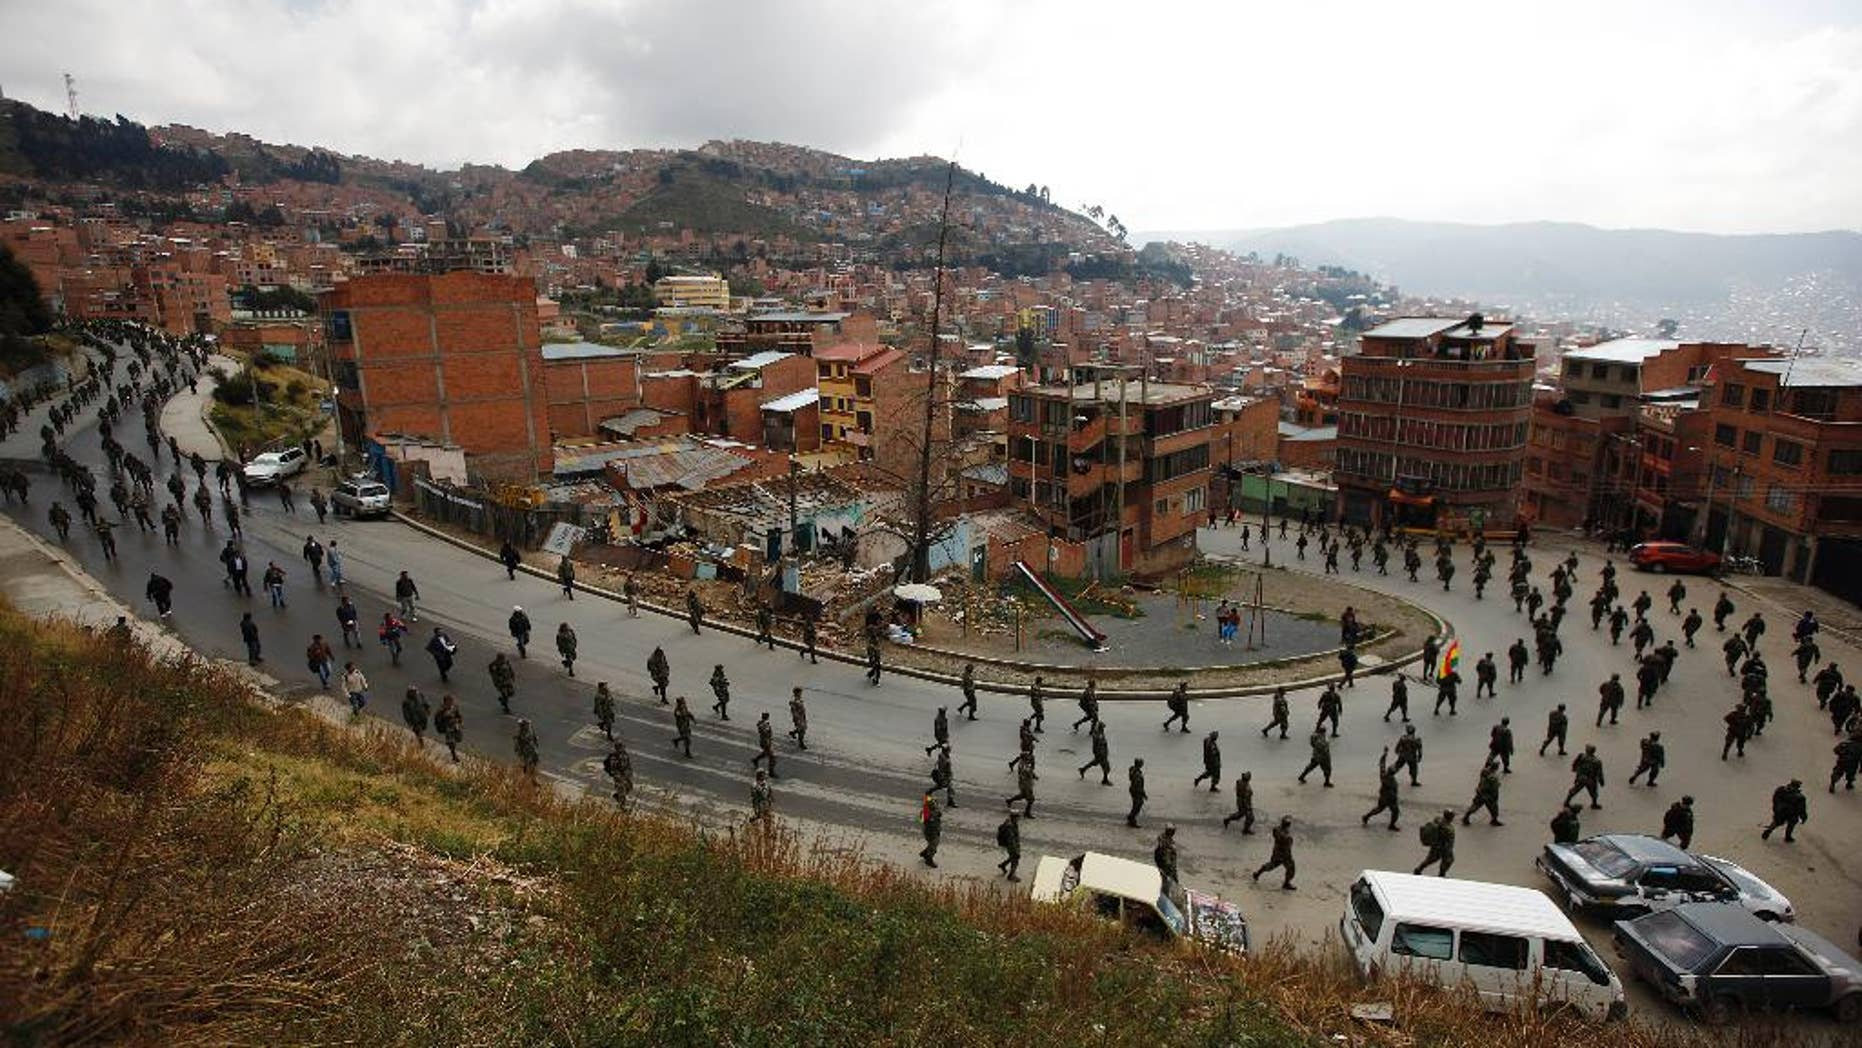 Low ranking soldiers march on the third day of protests in La Paz, Bolivia, Thursday, April 24, 2014. Enlisted soldiers are protesting the military high command's dismissal of four of its leaders who defended their call for changes so that non-commissioned officers may study to become career officers. (AP Photo/Juan Karita)